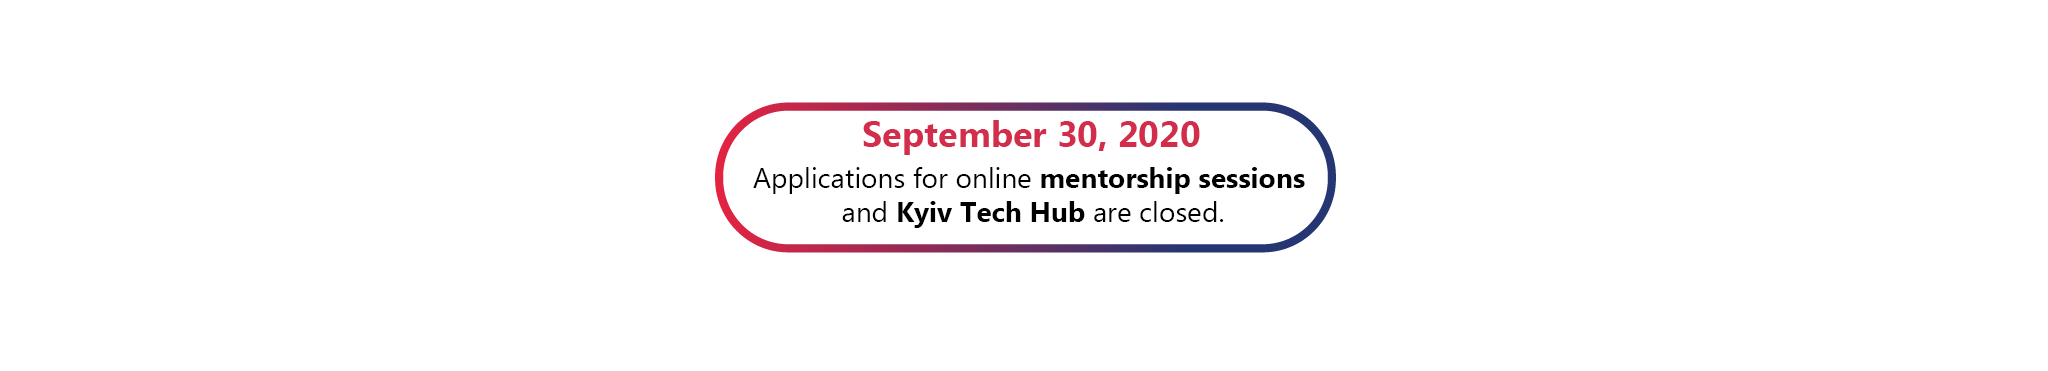 Application deadline for mentoring session and Kyiv Tech Hub 2020.